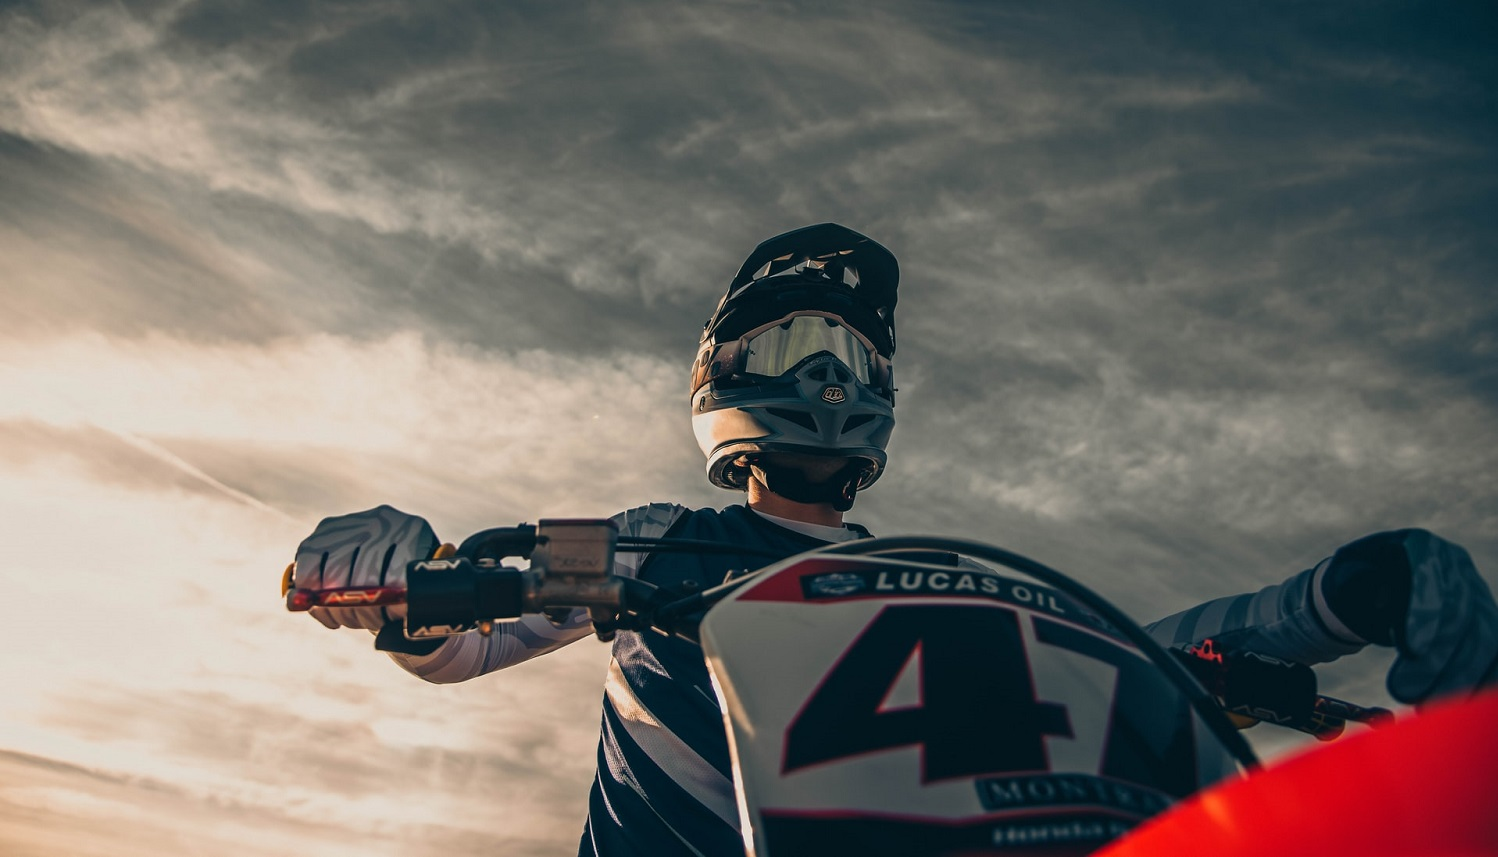 Read more about the article How to Choose the Best Motocross Motorcycle as a Beginner